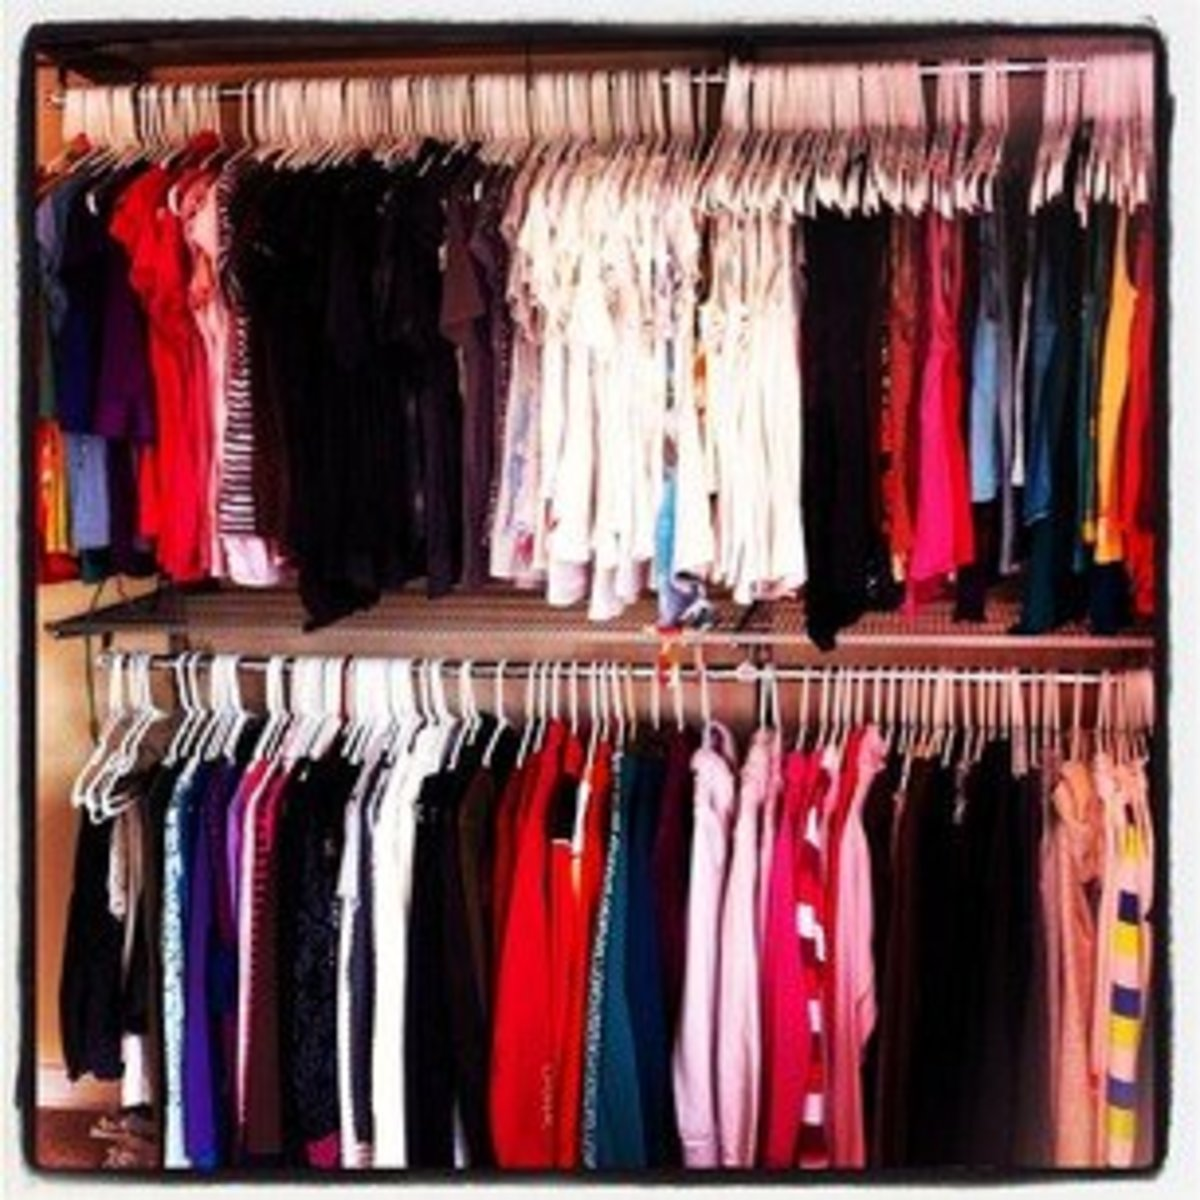 How to Organize Your Clothes Closet by Type and Color-Step by Step Instructions